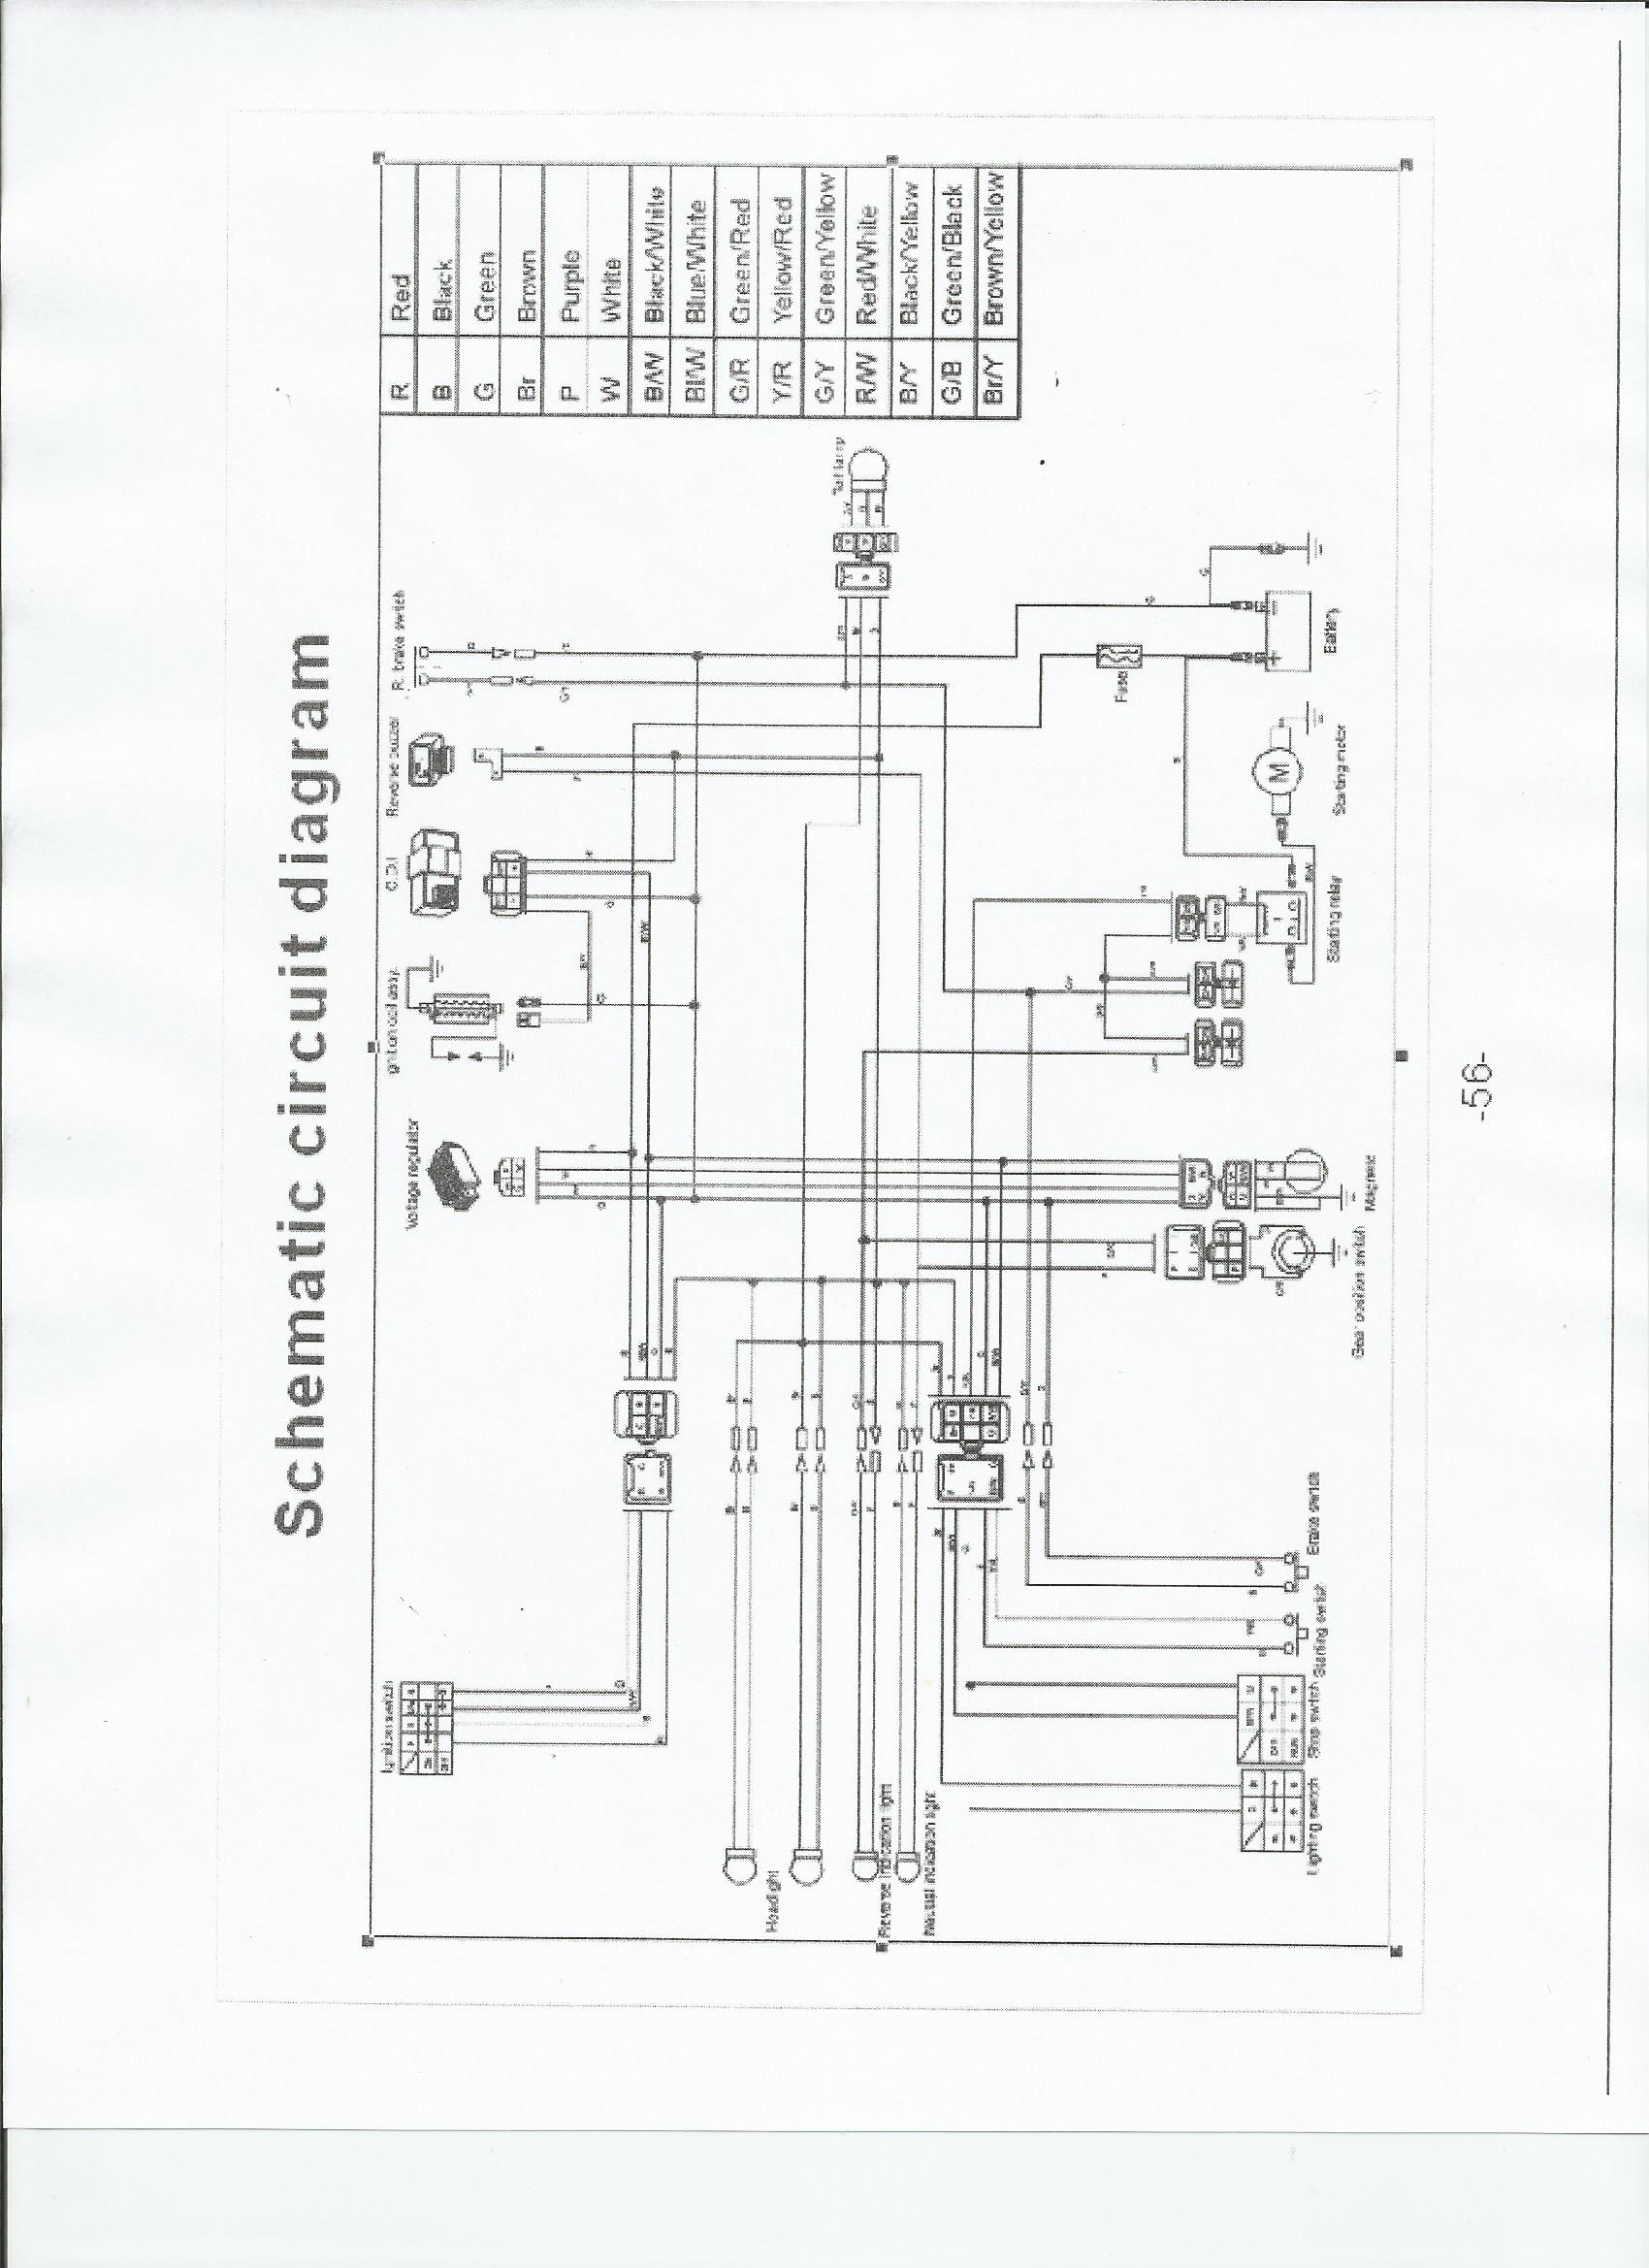 Wiring Diagram 5 Wire Stator Wiring Diagram Chinese Atv